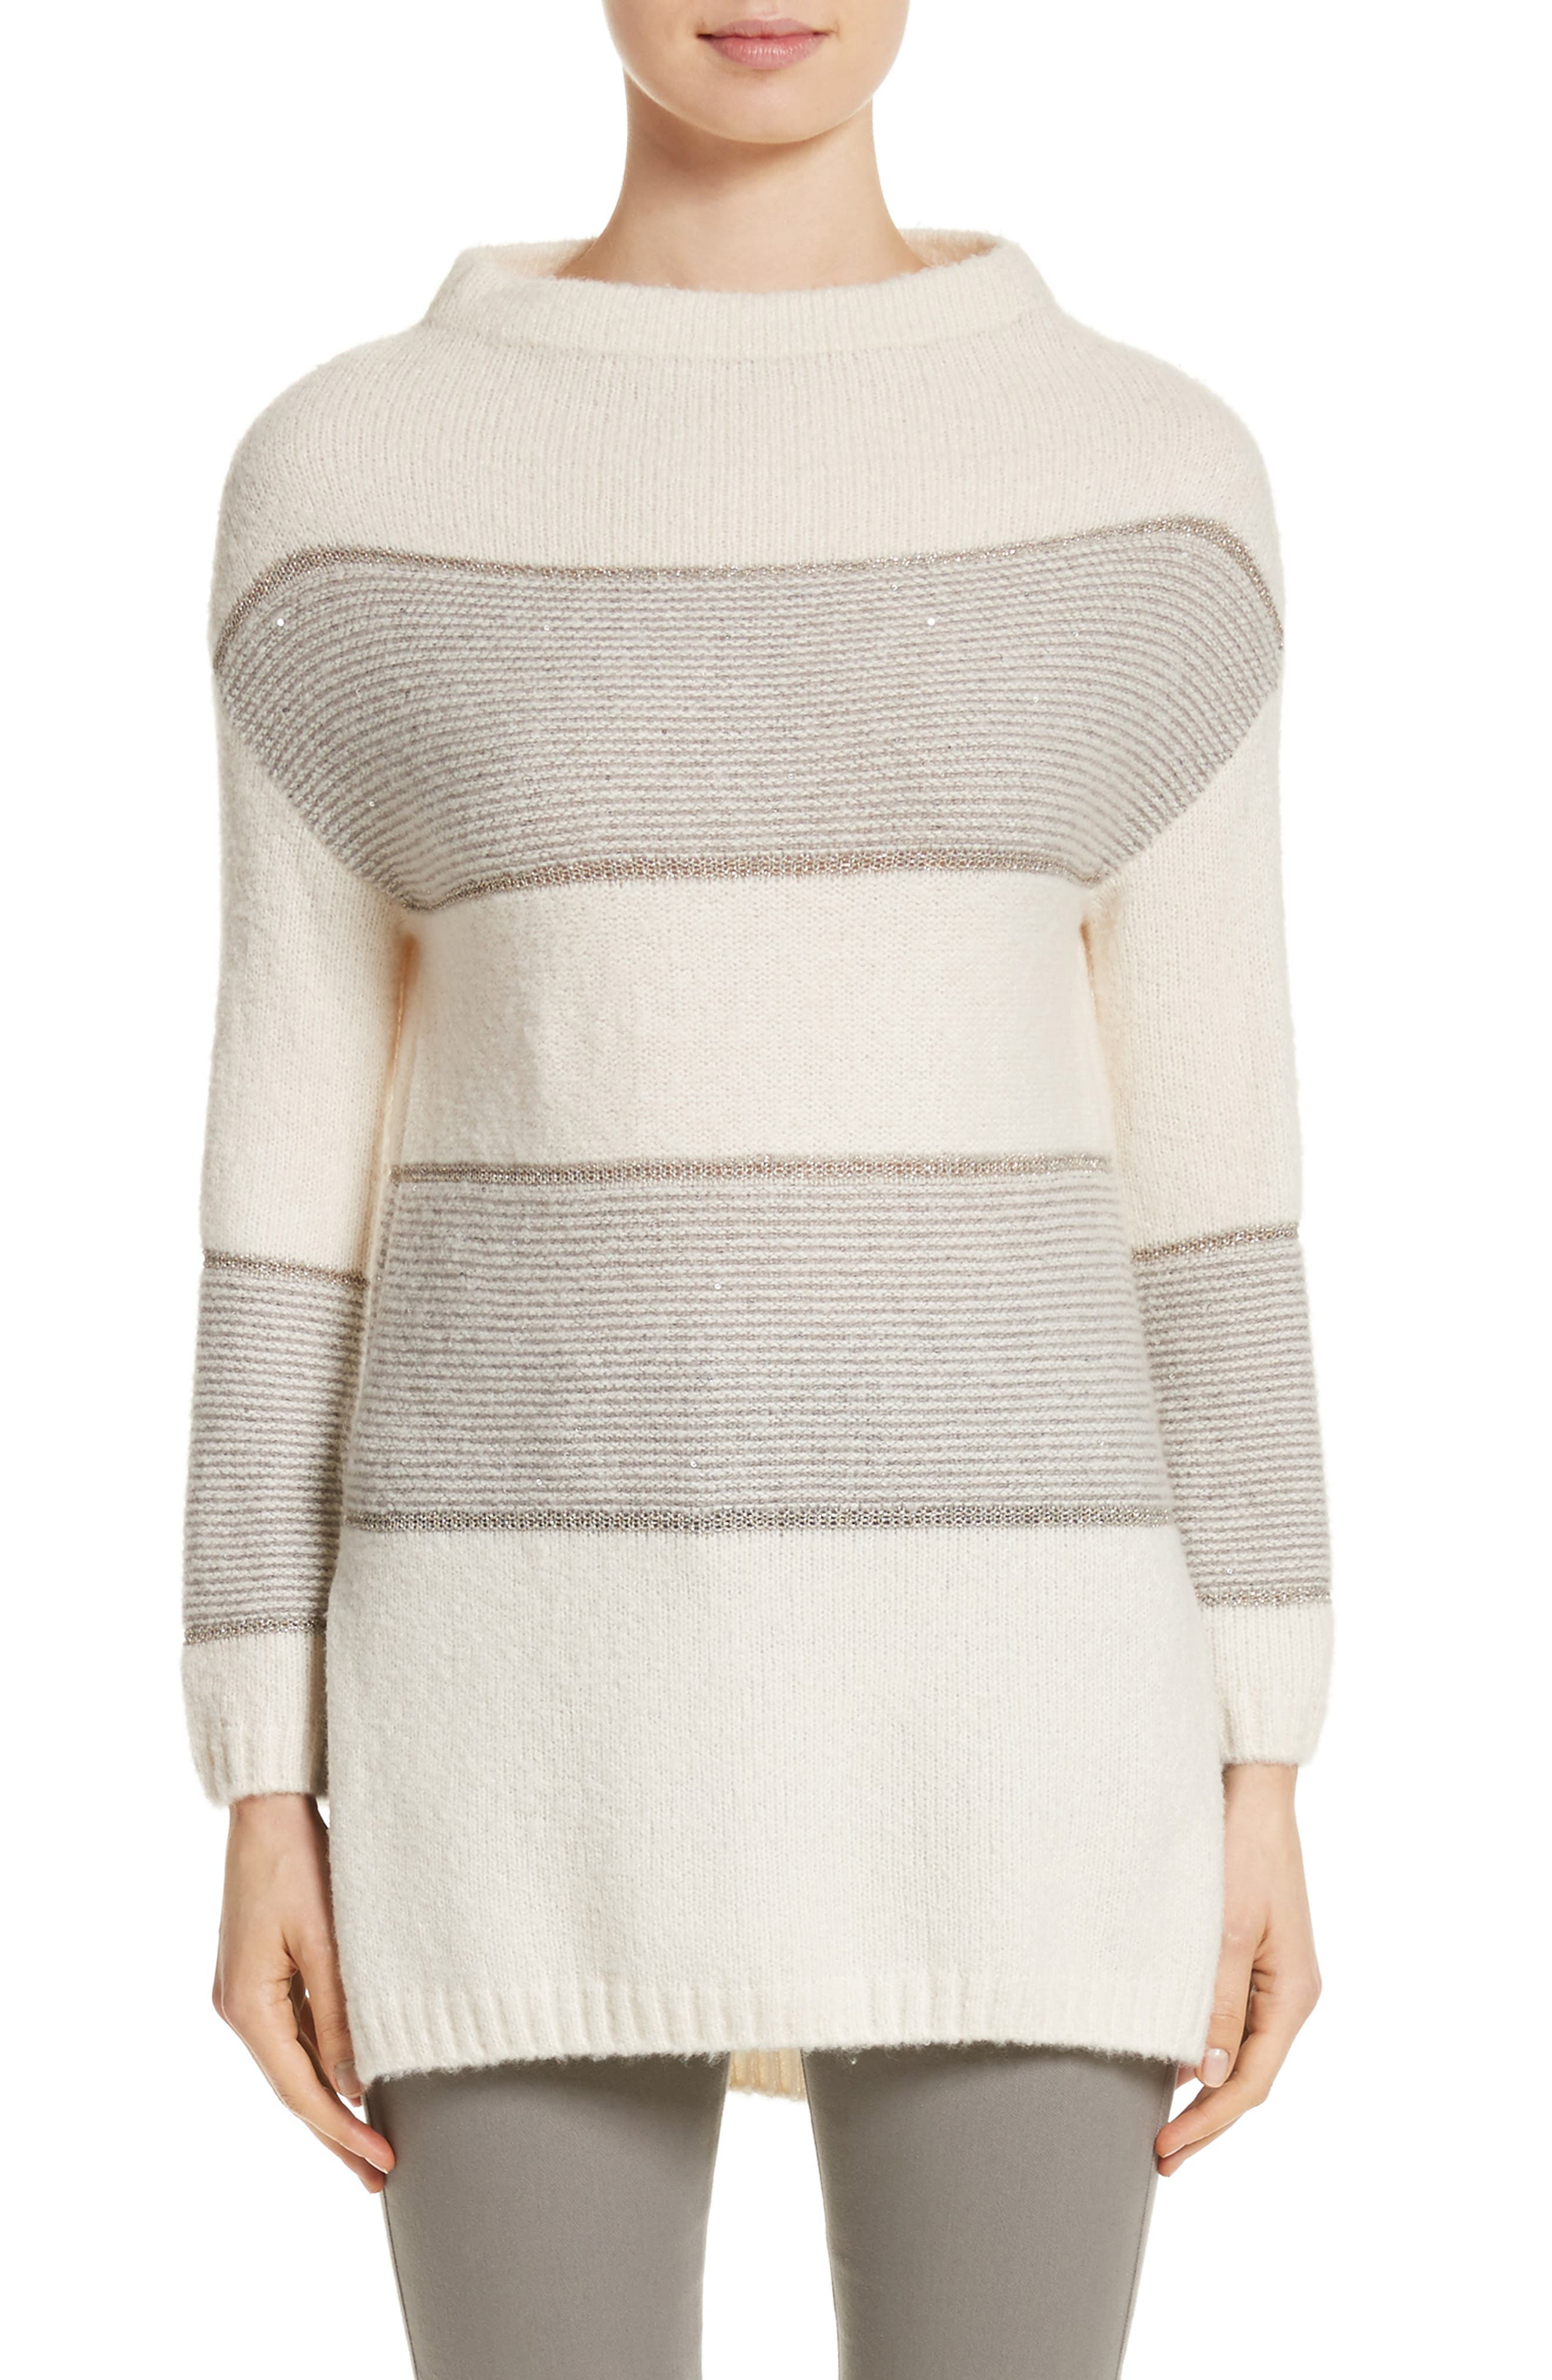 Links Knit Funnel Neck Sweater,                         Main,                         color, Stone/Travertine